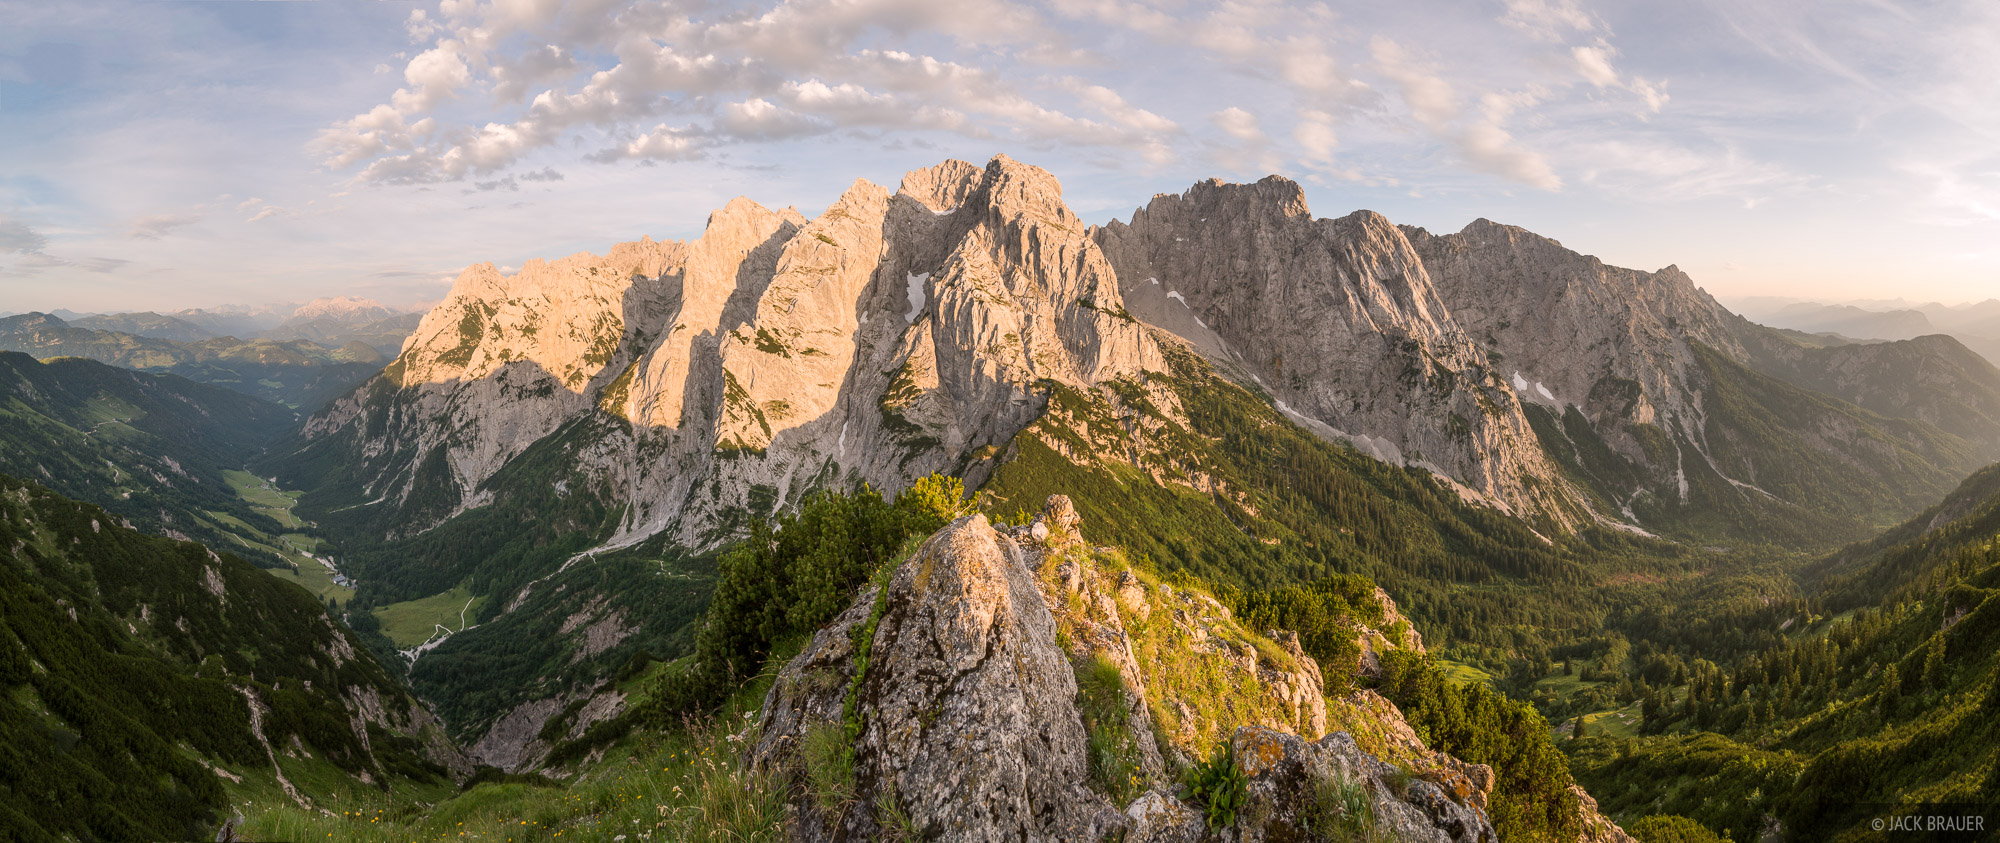 Austria, Kaisergebirge, Stripsenjochhaus, Stripsenkopf, Wilder Kaiser, sunset, panorama, photo